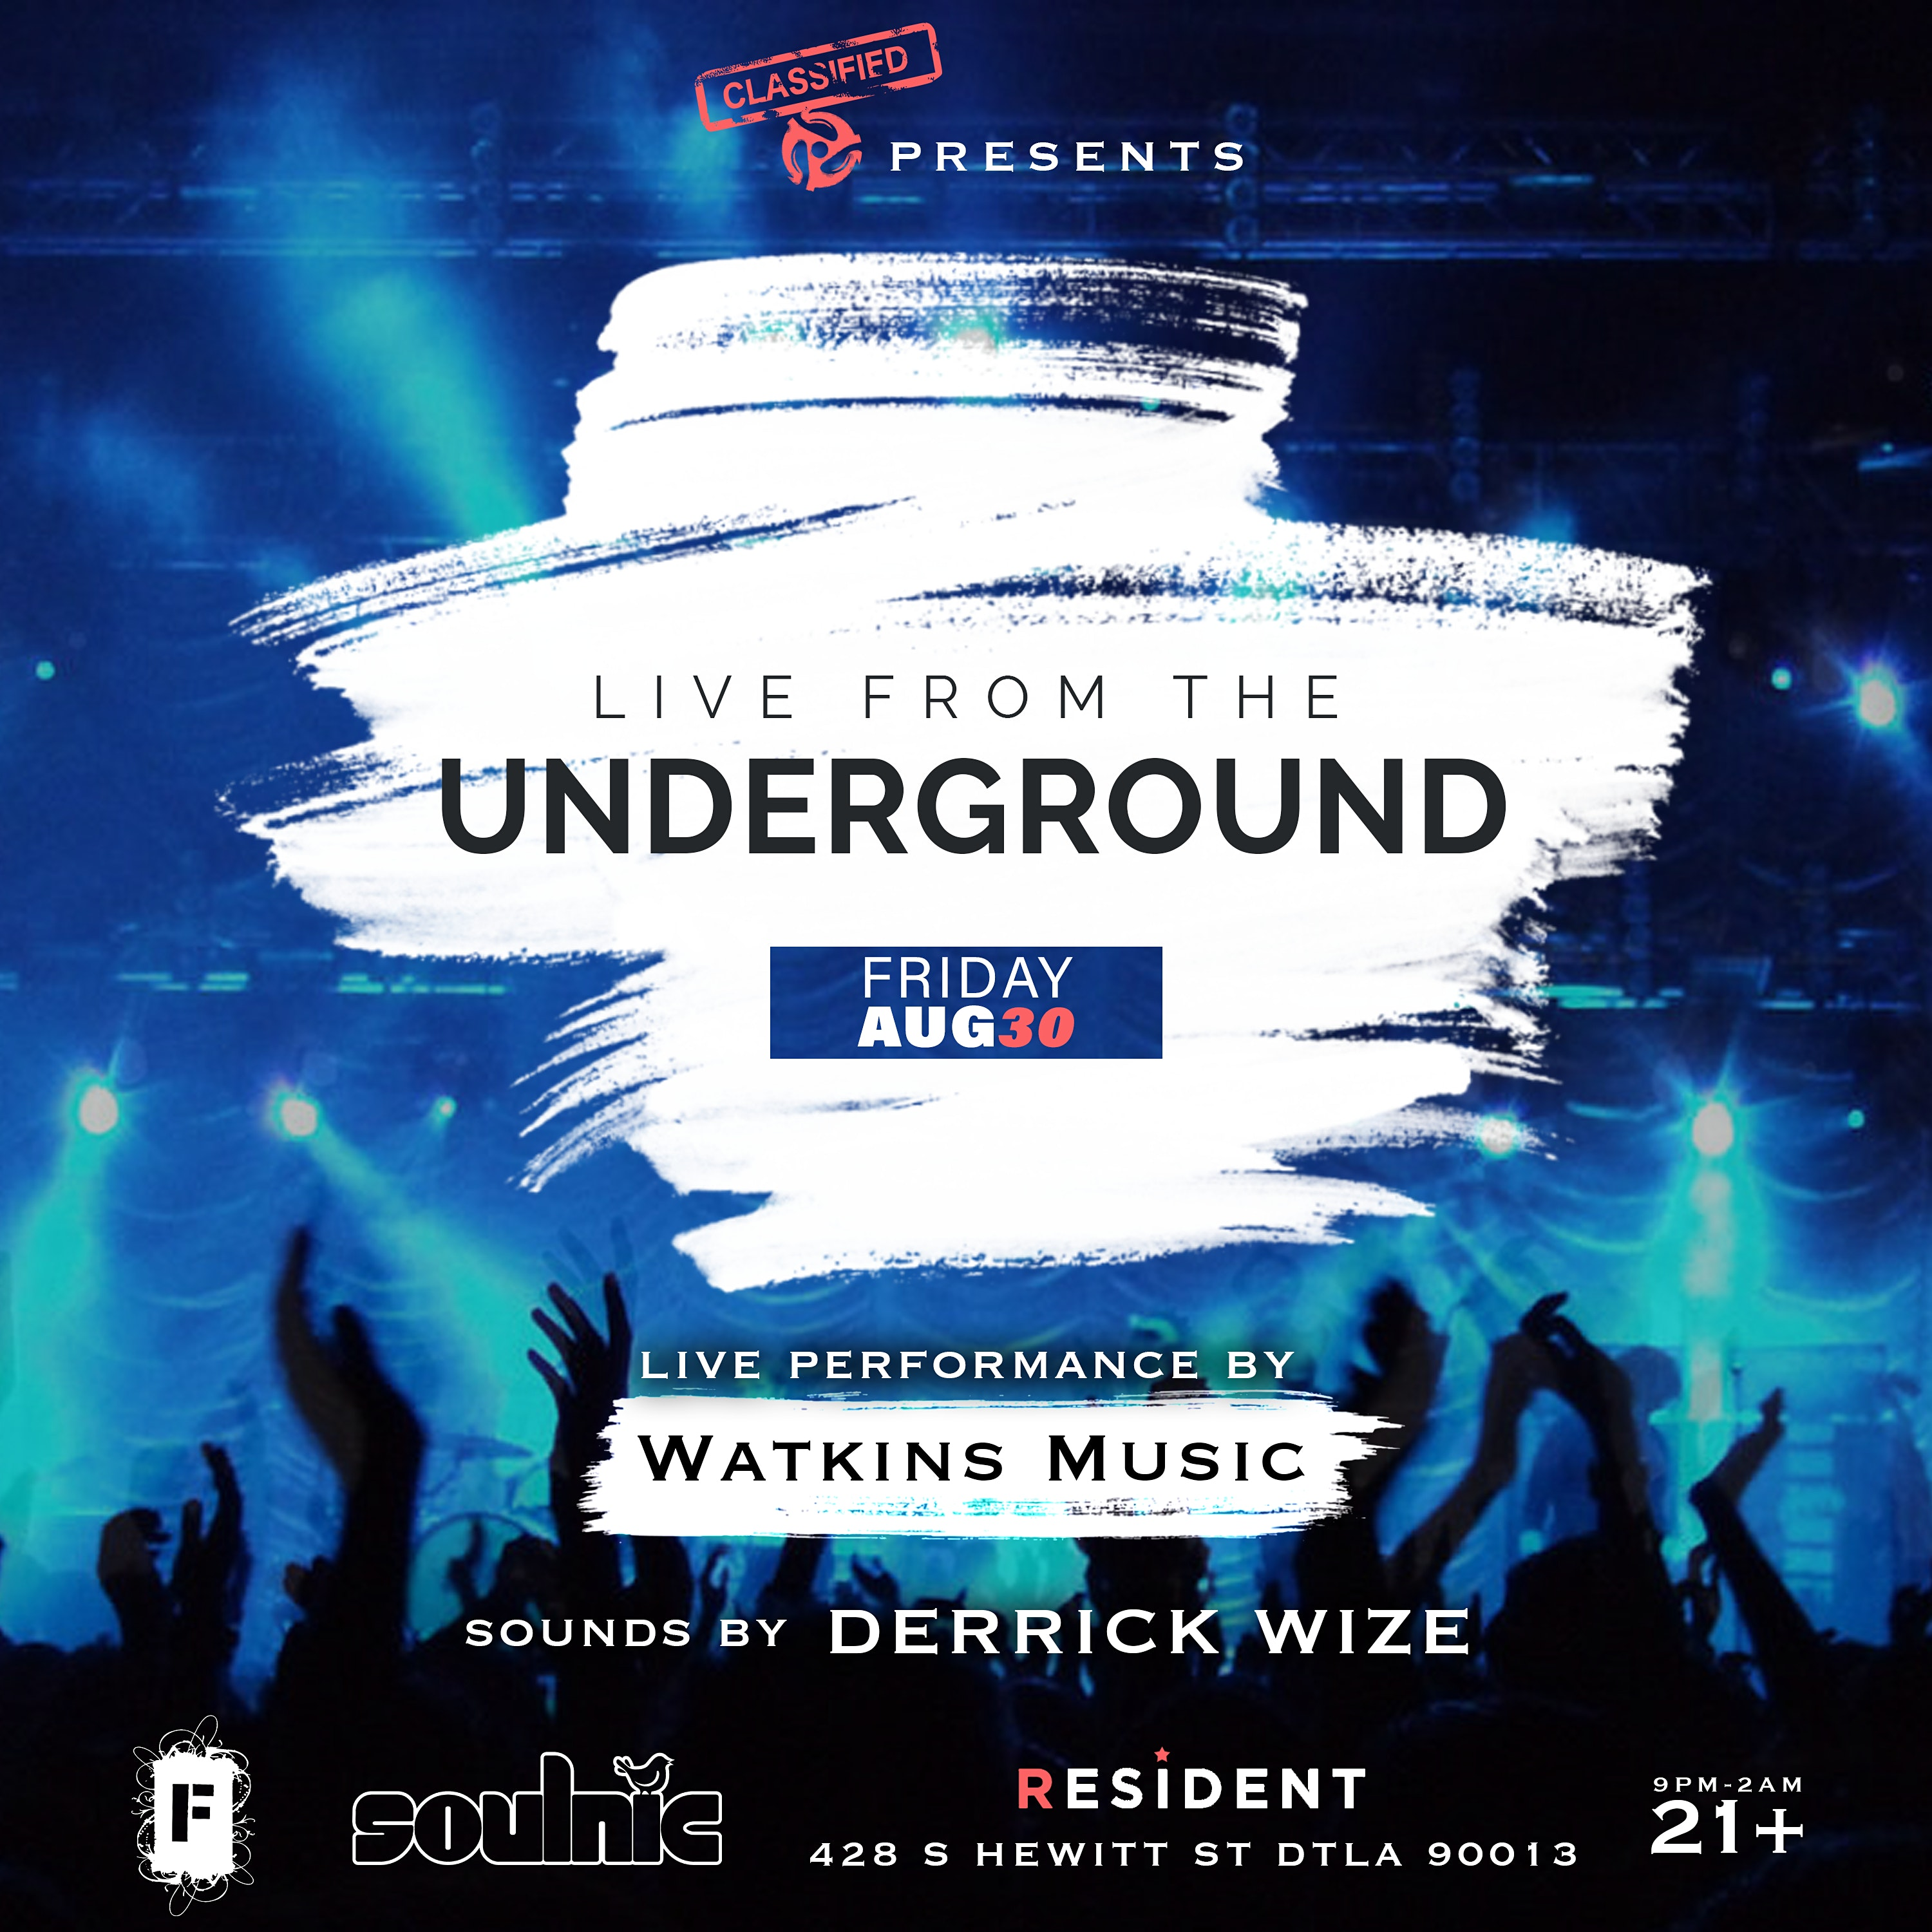 Classified Events Presents  LIVE FROM THE UNDERGROUND